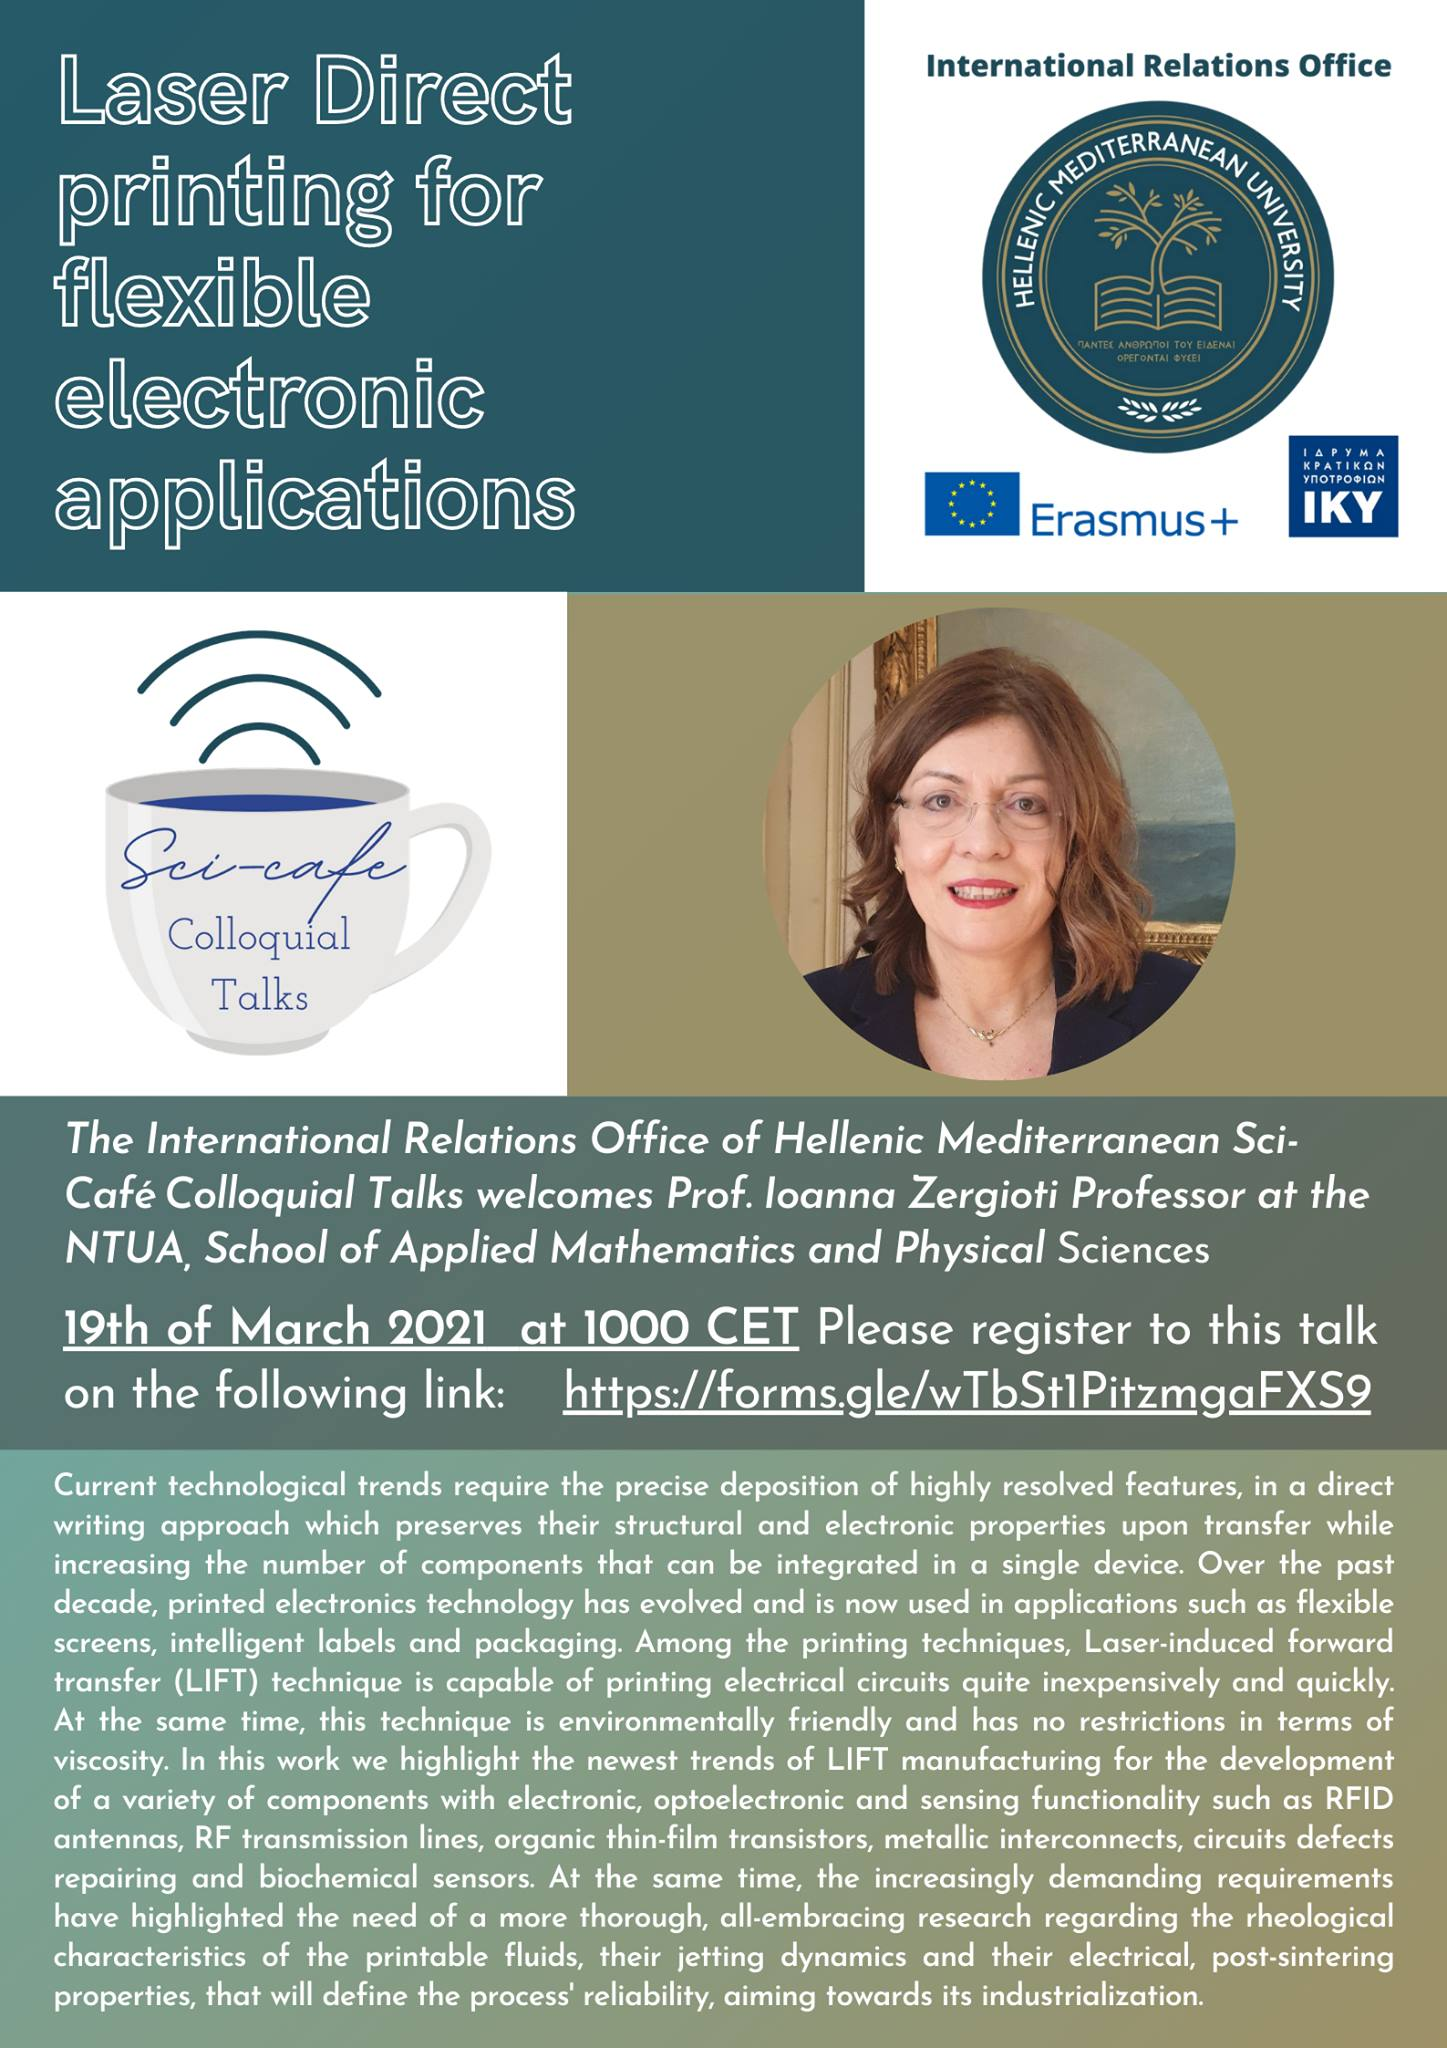 Sci- Cafe Talk from Professor Ioanna Zergiotiin, Friday 19th of March 2021